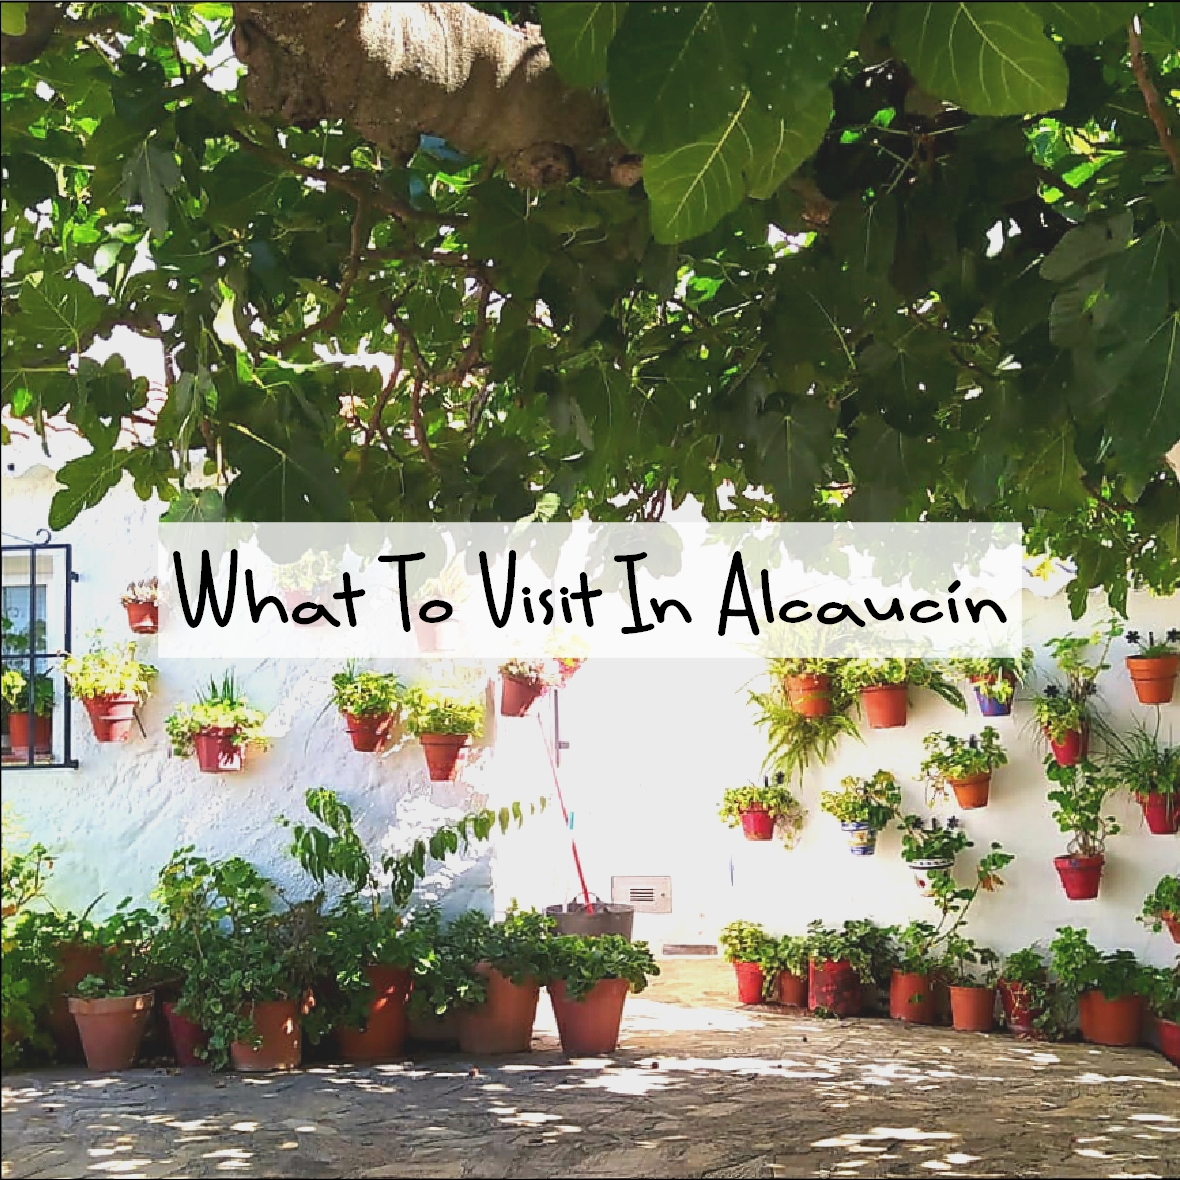 What to visit in Alcaucin